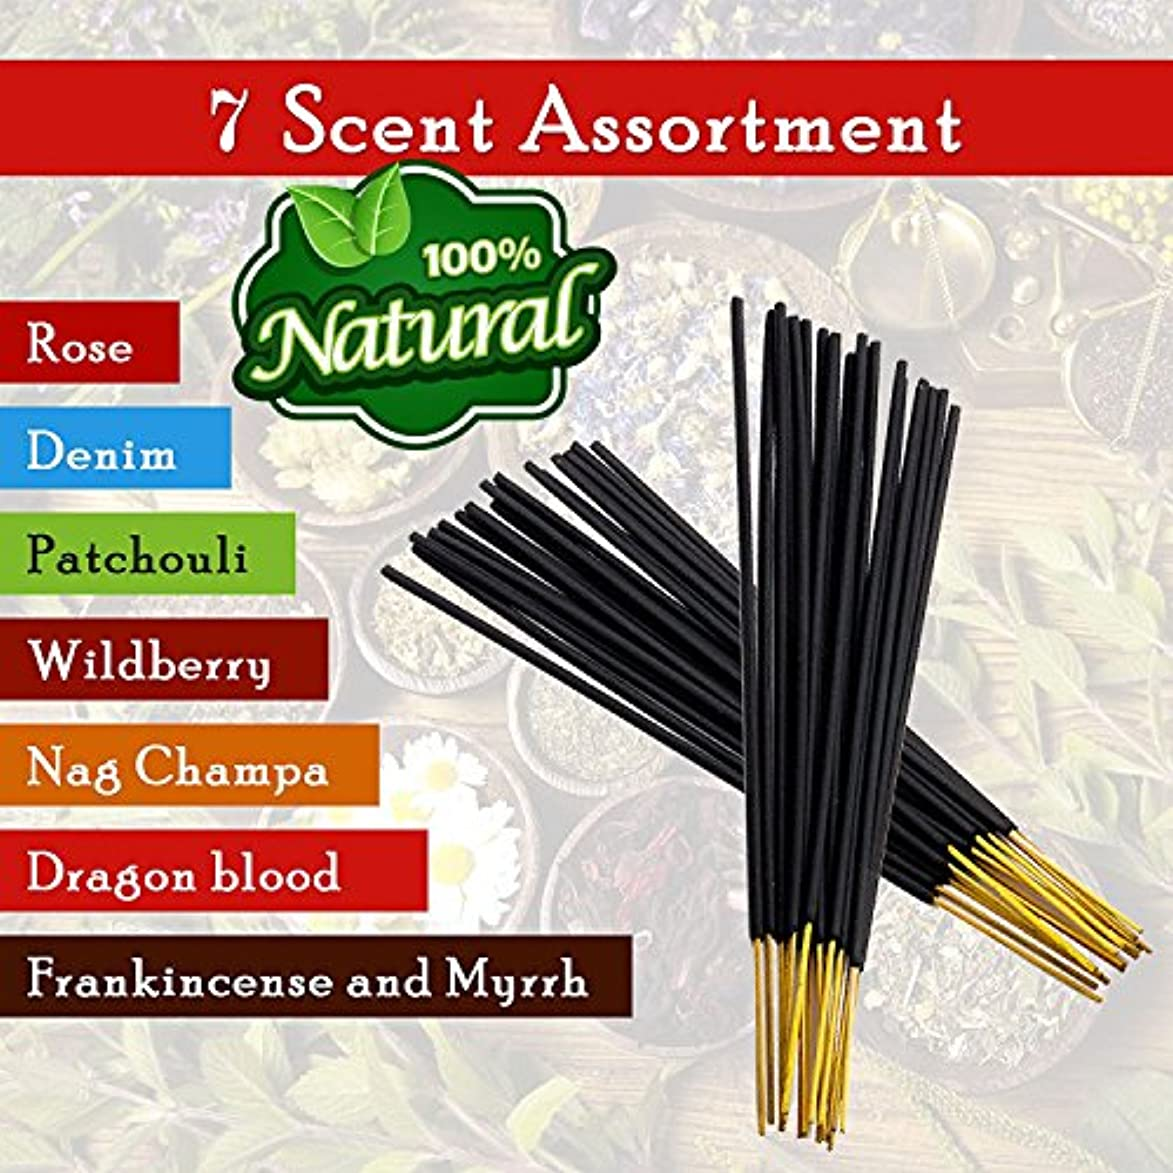 放置愛されし者スペクトラム7-assorted-scents-Frankincense-and-Myrrh-Patchouli-Denim-Rose Dragon-blood-Nag-champa-Wildberry 100%-Natural-Incense-Sticks...